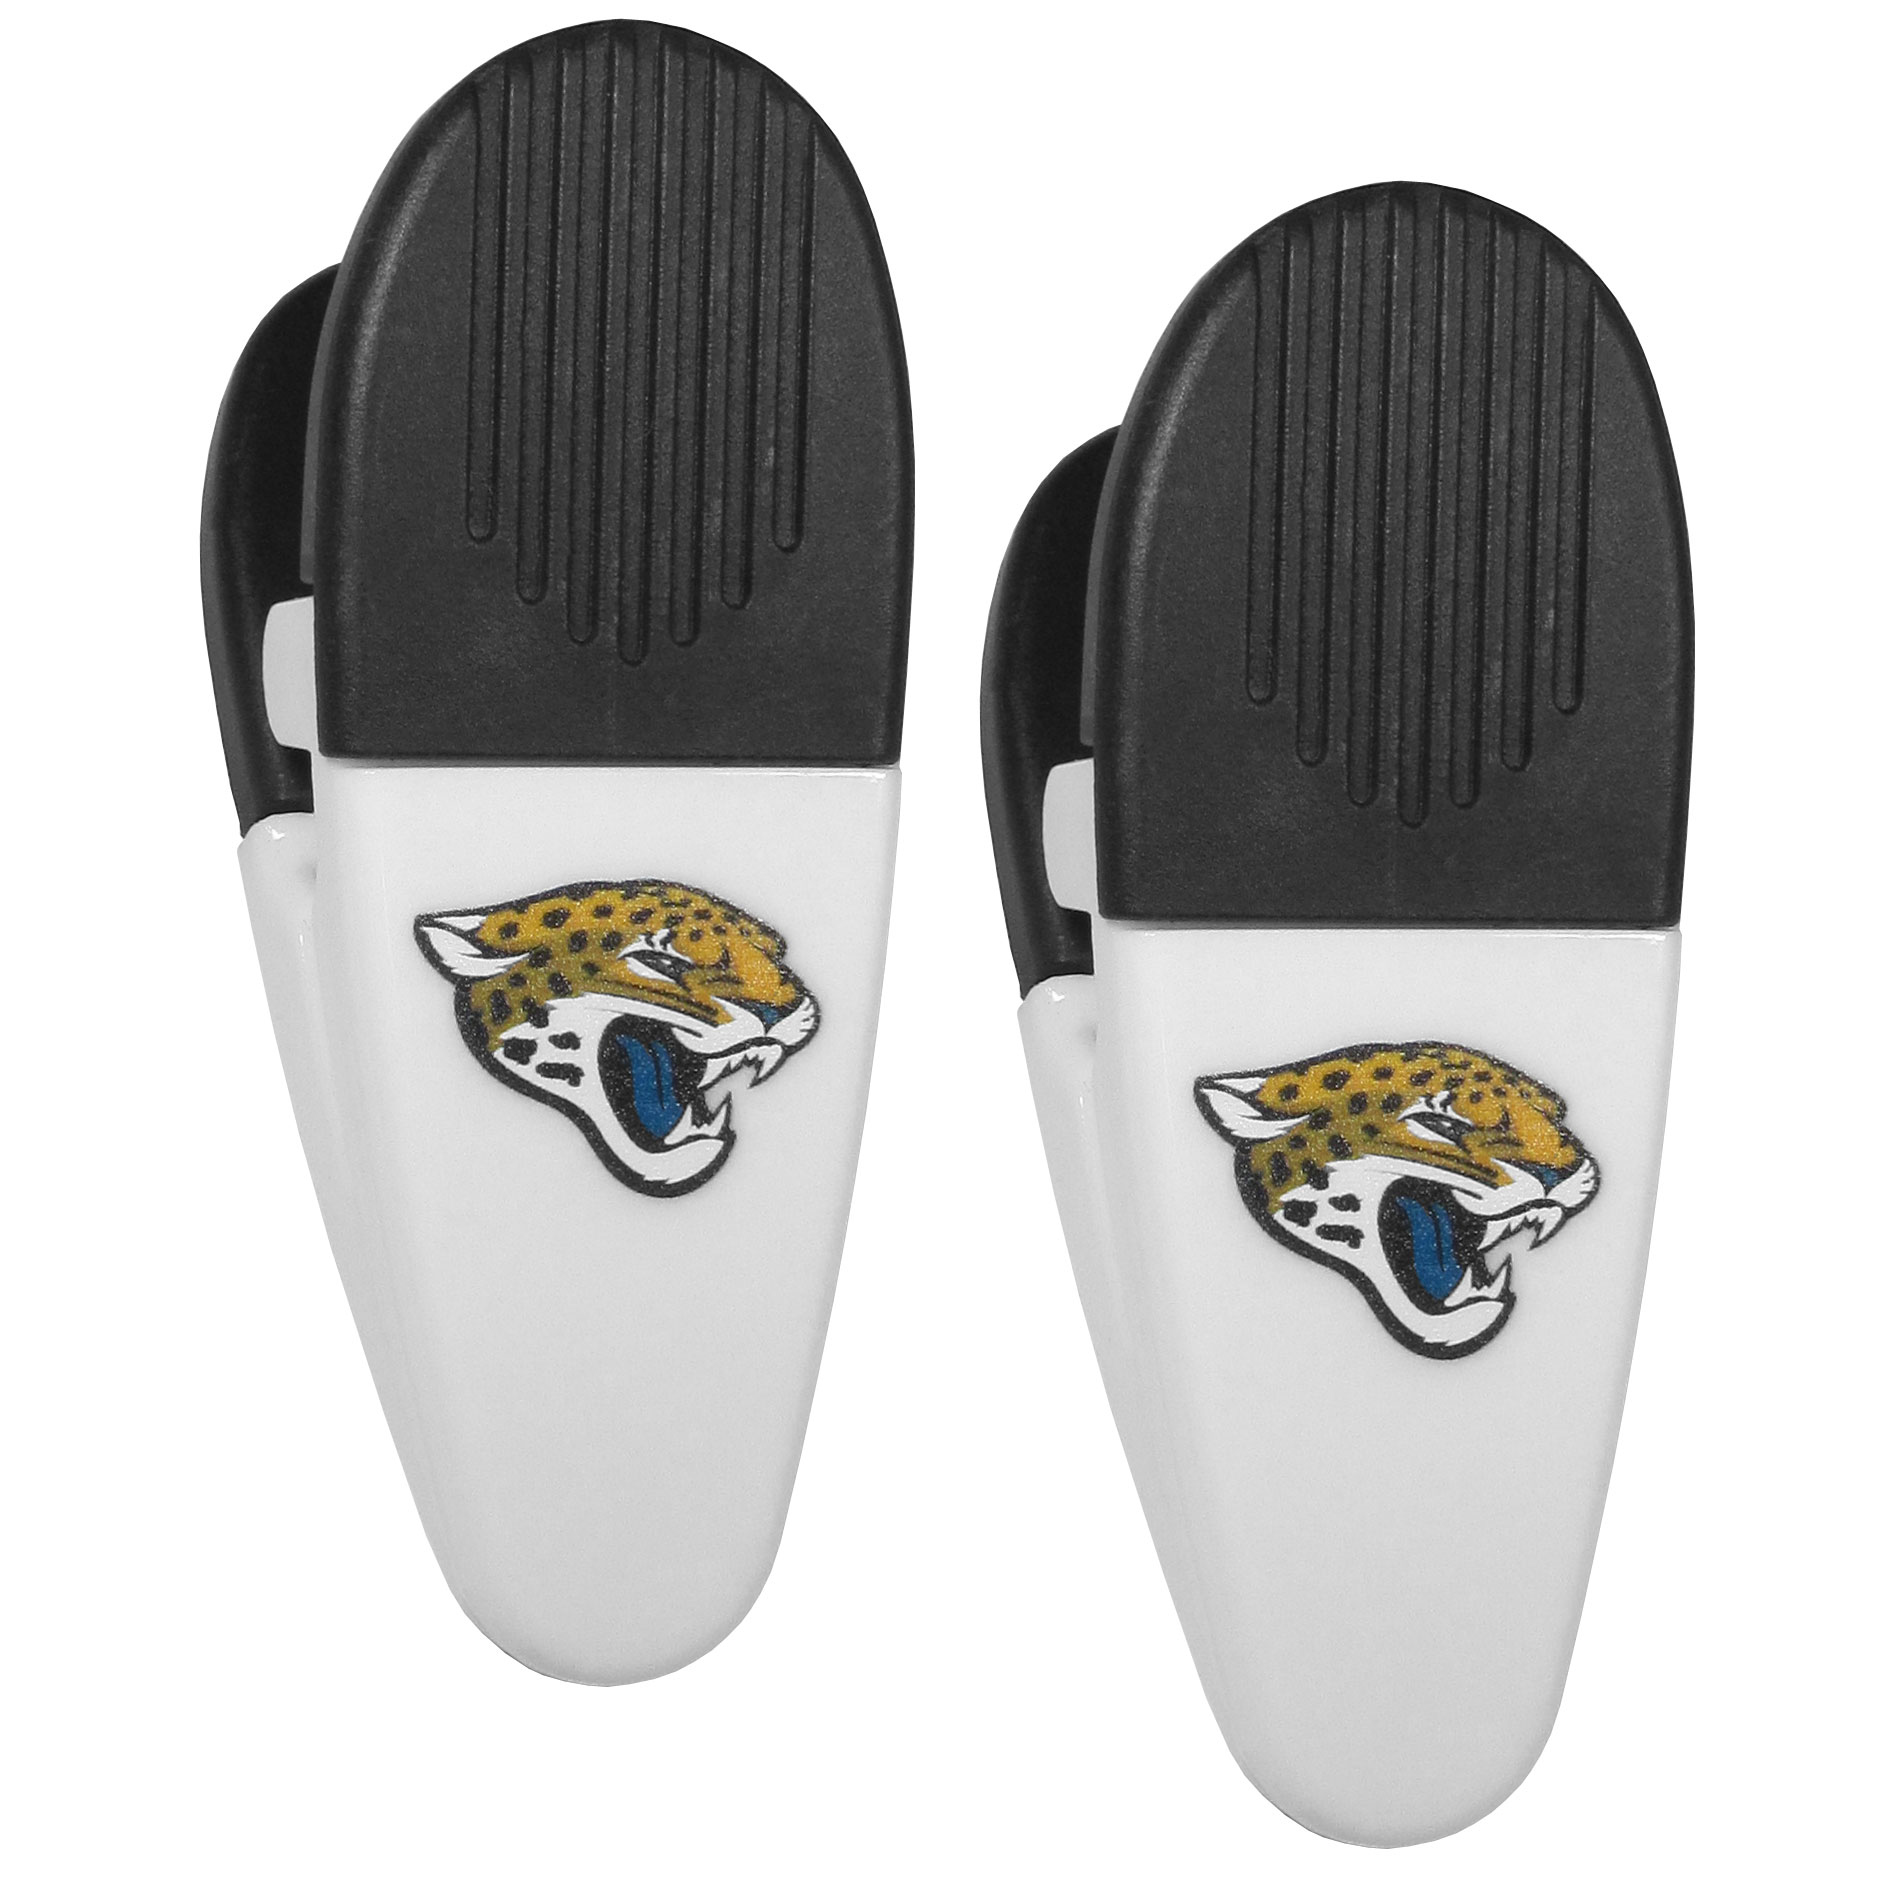 Jacksonville Jaguars Mini Chip Clip Magnets, 2 pk - Our Jacksonville Jaguars chip clip magnets feature a crisp team logo on the front of the clip. The clip is perfect for sealing chips for freshness and with the powerful magnet on the back it can be used to attach notes to the fridge or hanging your child's artwork. Set of 2 magnet clips, each clip is 3.5 inches tall and 1.25 inch wide.